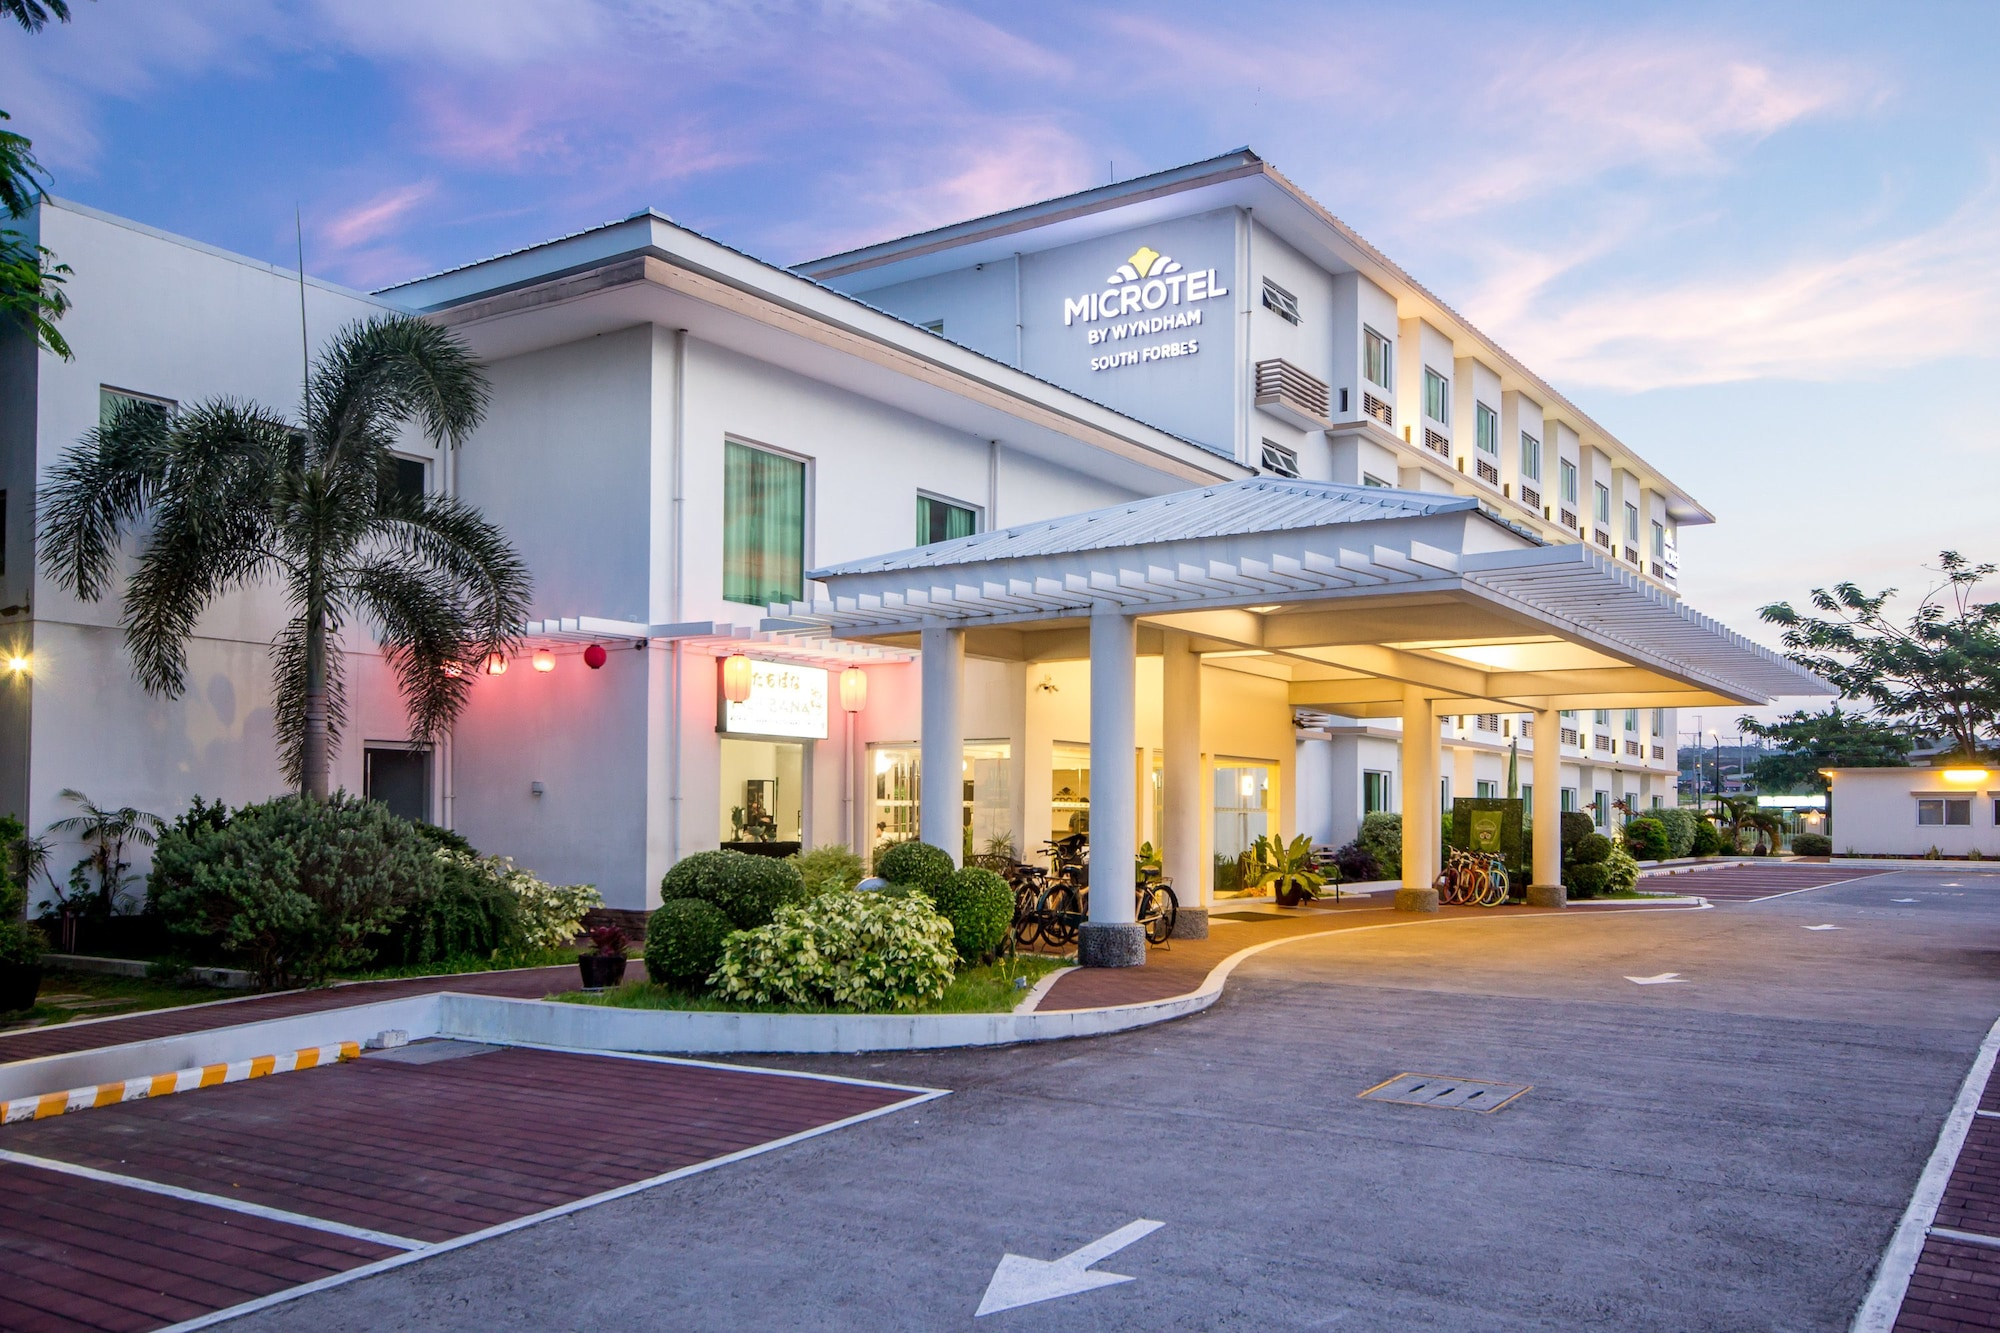 Microtel by Wyndham South Forbes near Nuvali, Silang